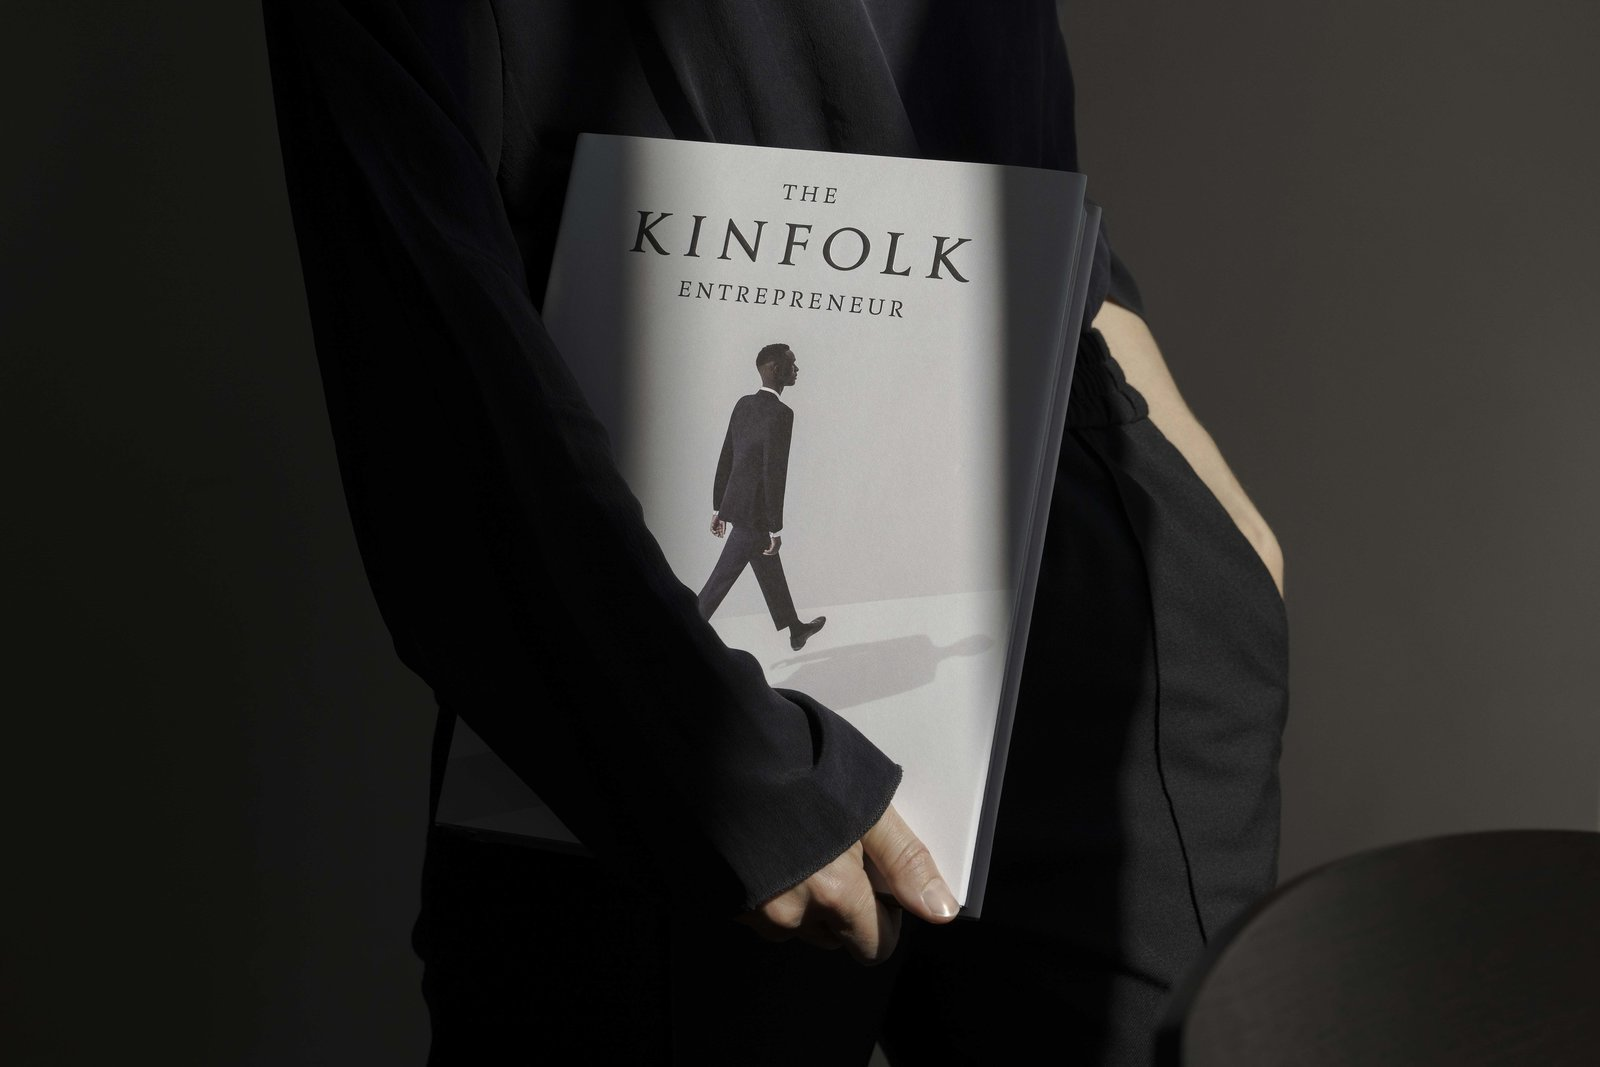 Photo 2 of 10 in Meet 40 of the World's Most Creative Entrepreneurs With Kinfolk's New Book